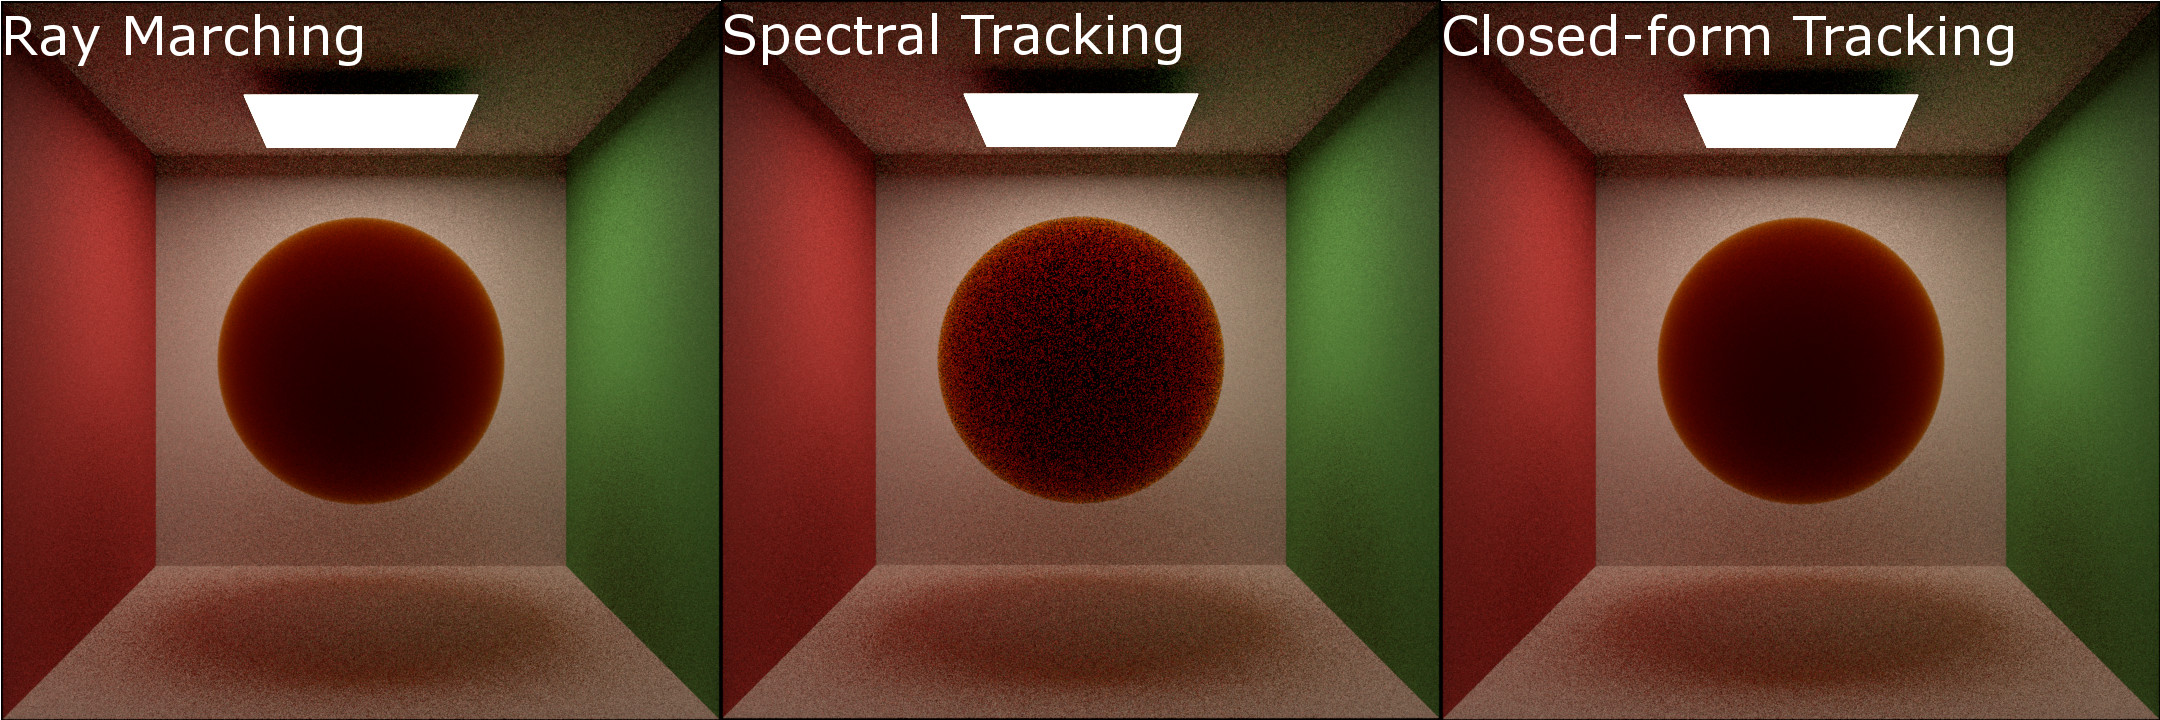 spectrally_refined_no_scattering